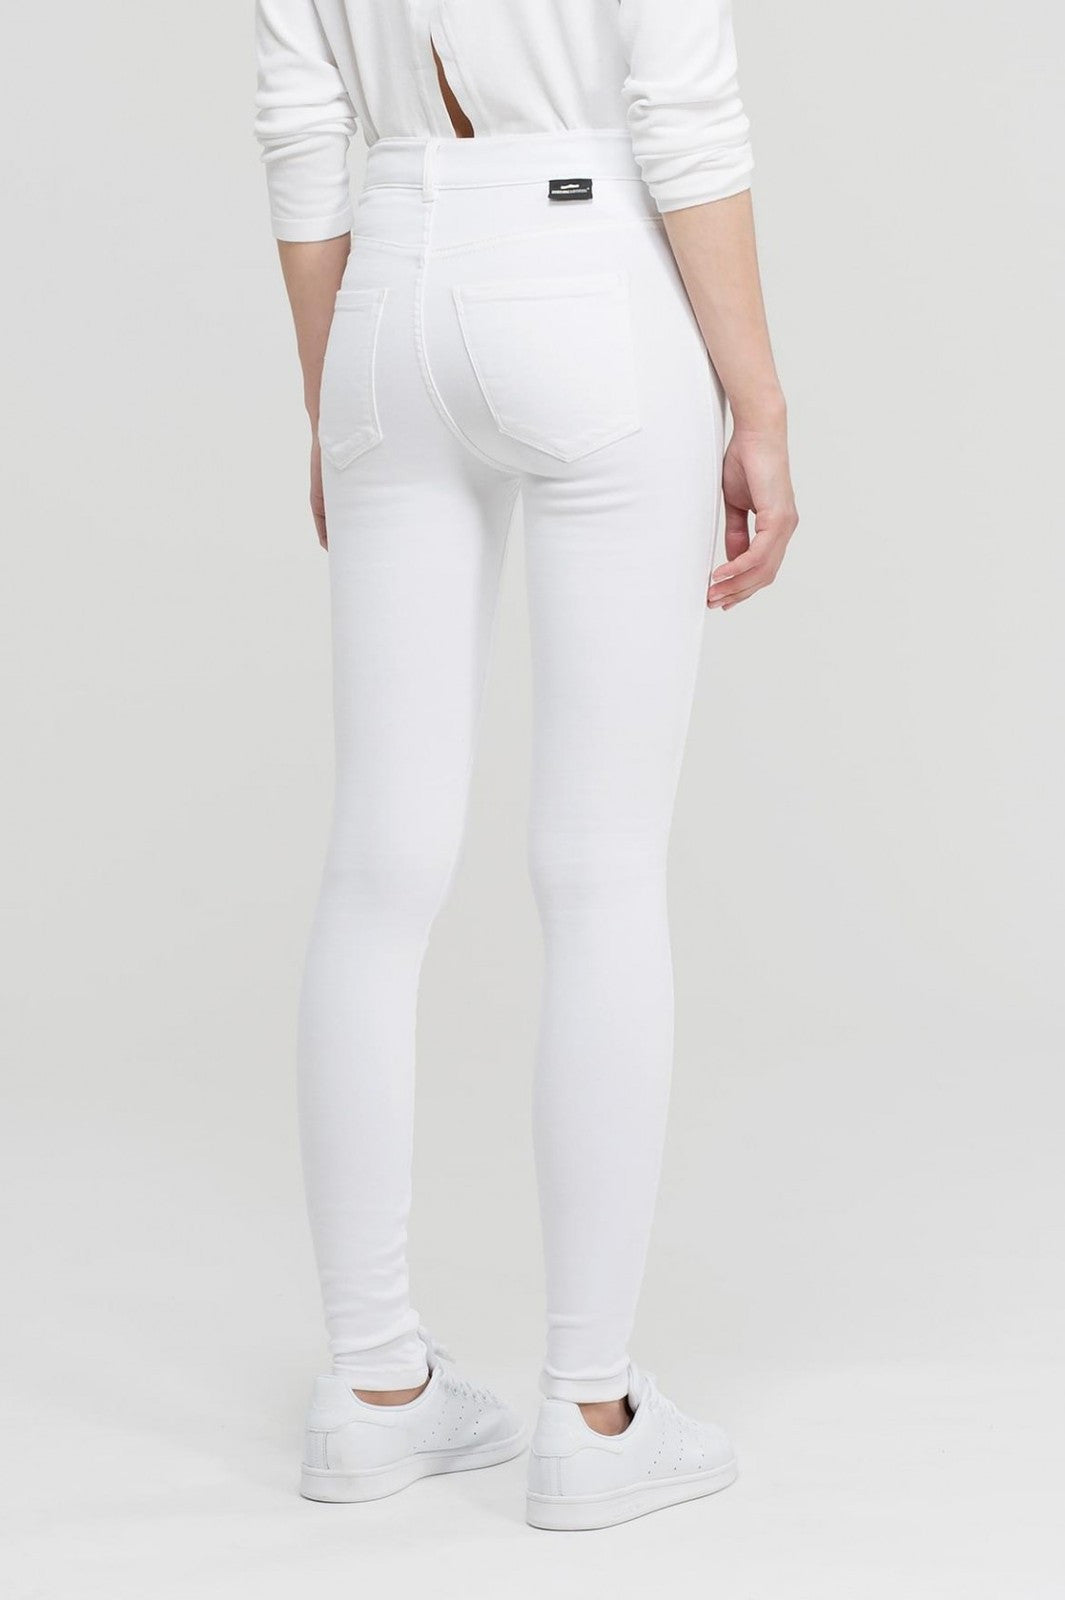 Lexy Jeans White